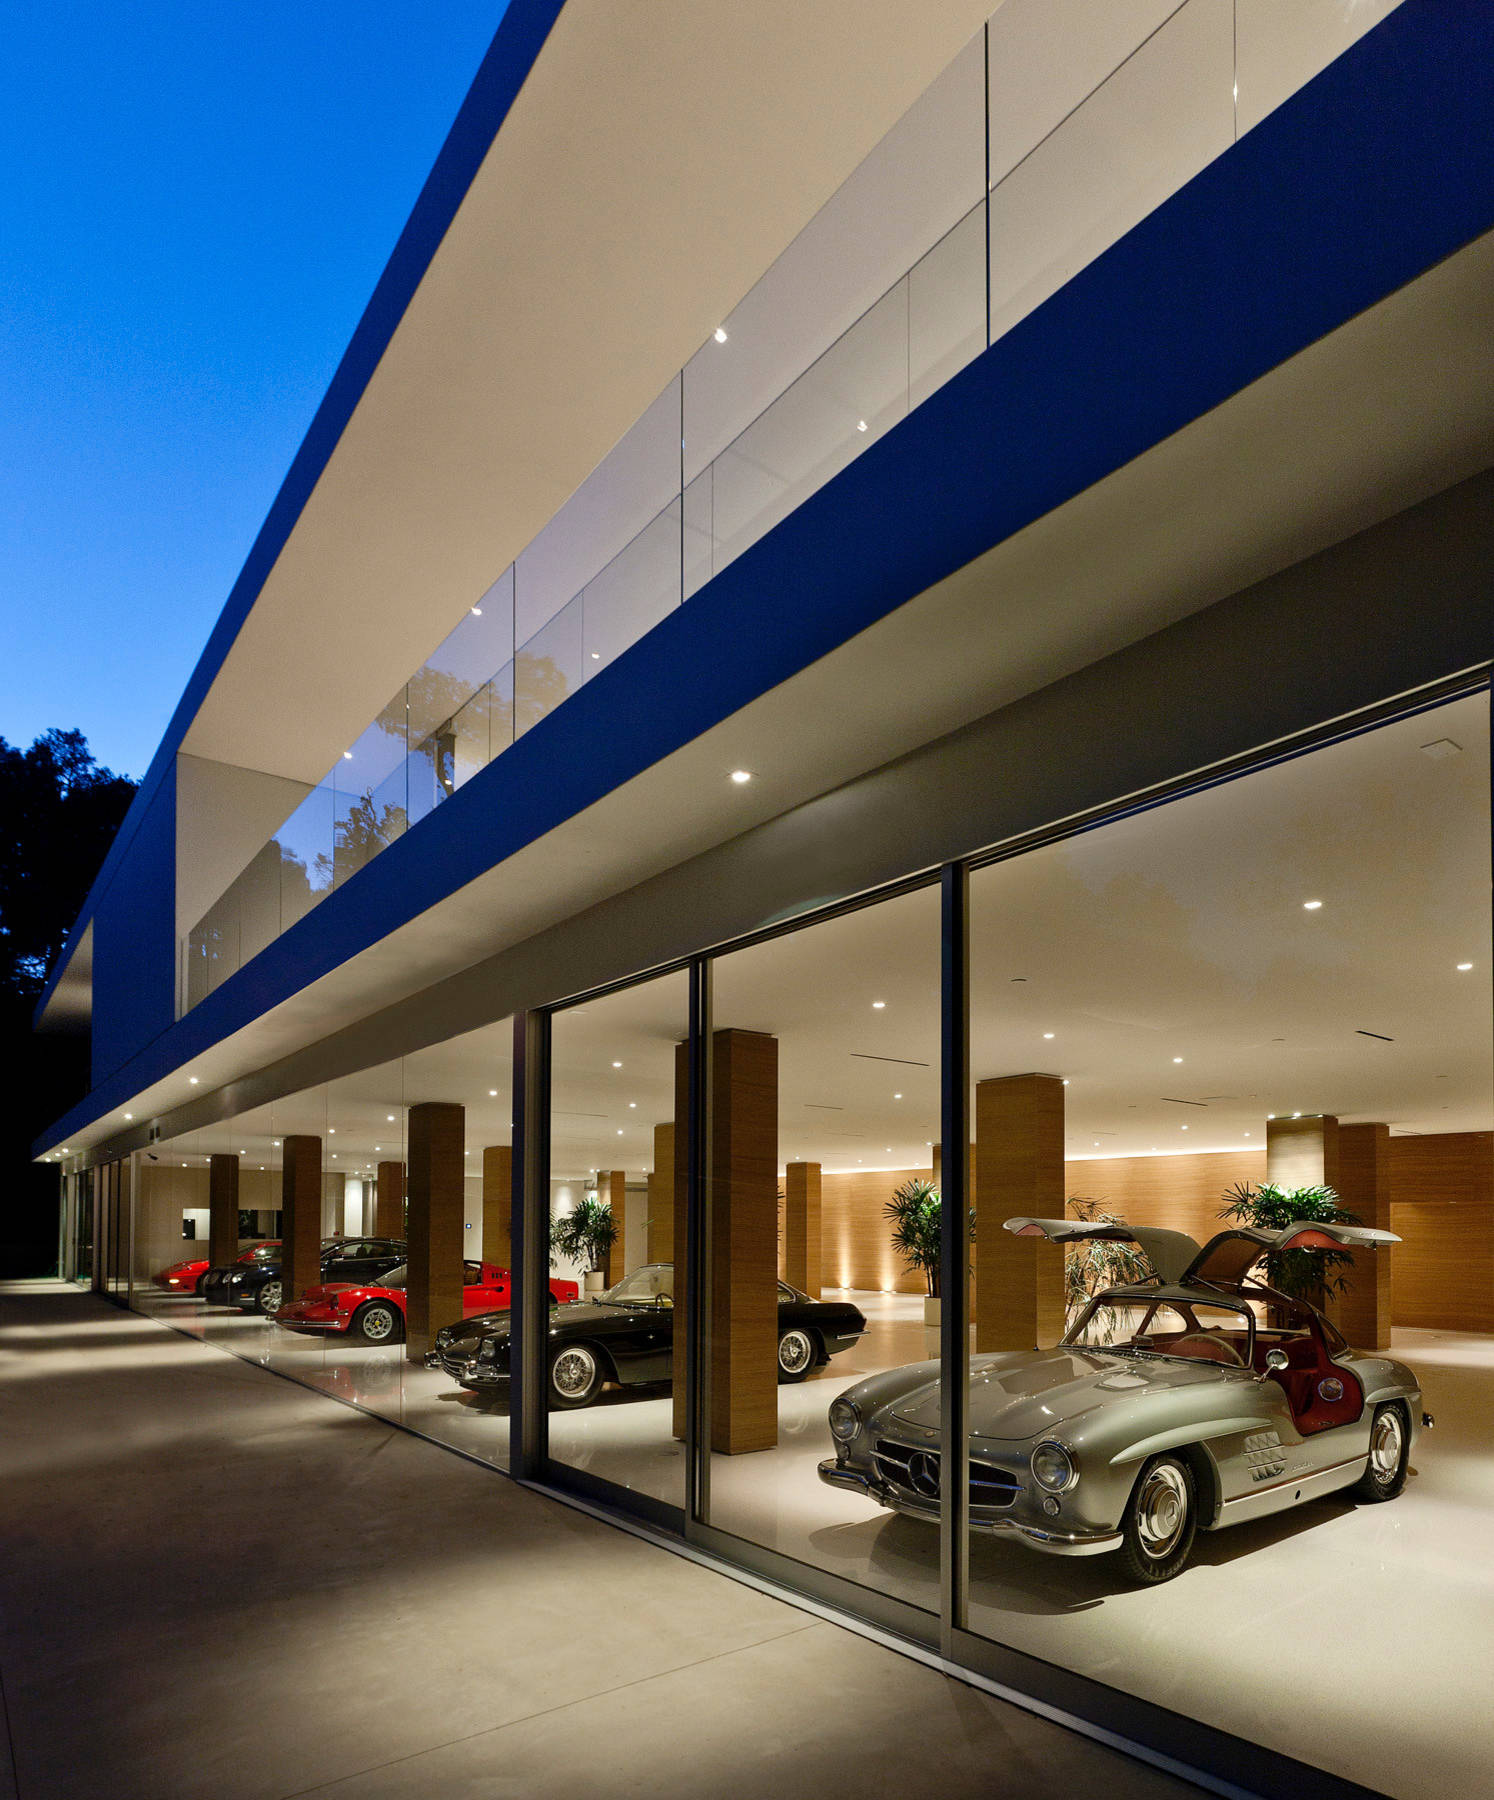 75 Beautiful Modern Four Car Garage Pictures Ideas February 2021 Houzz